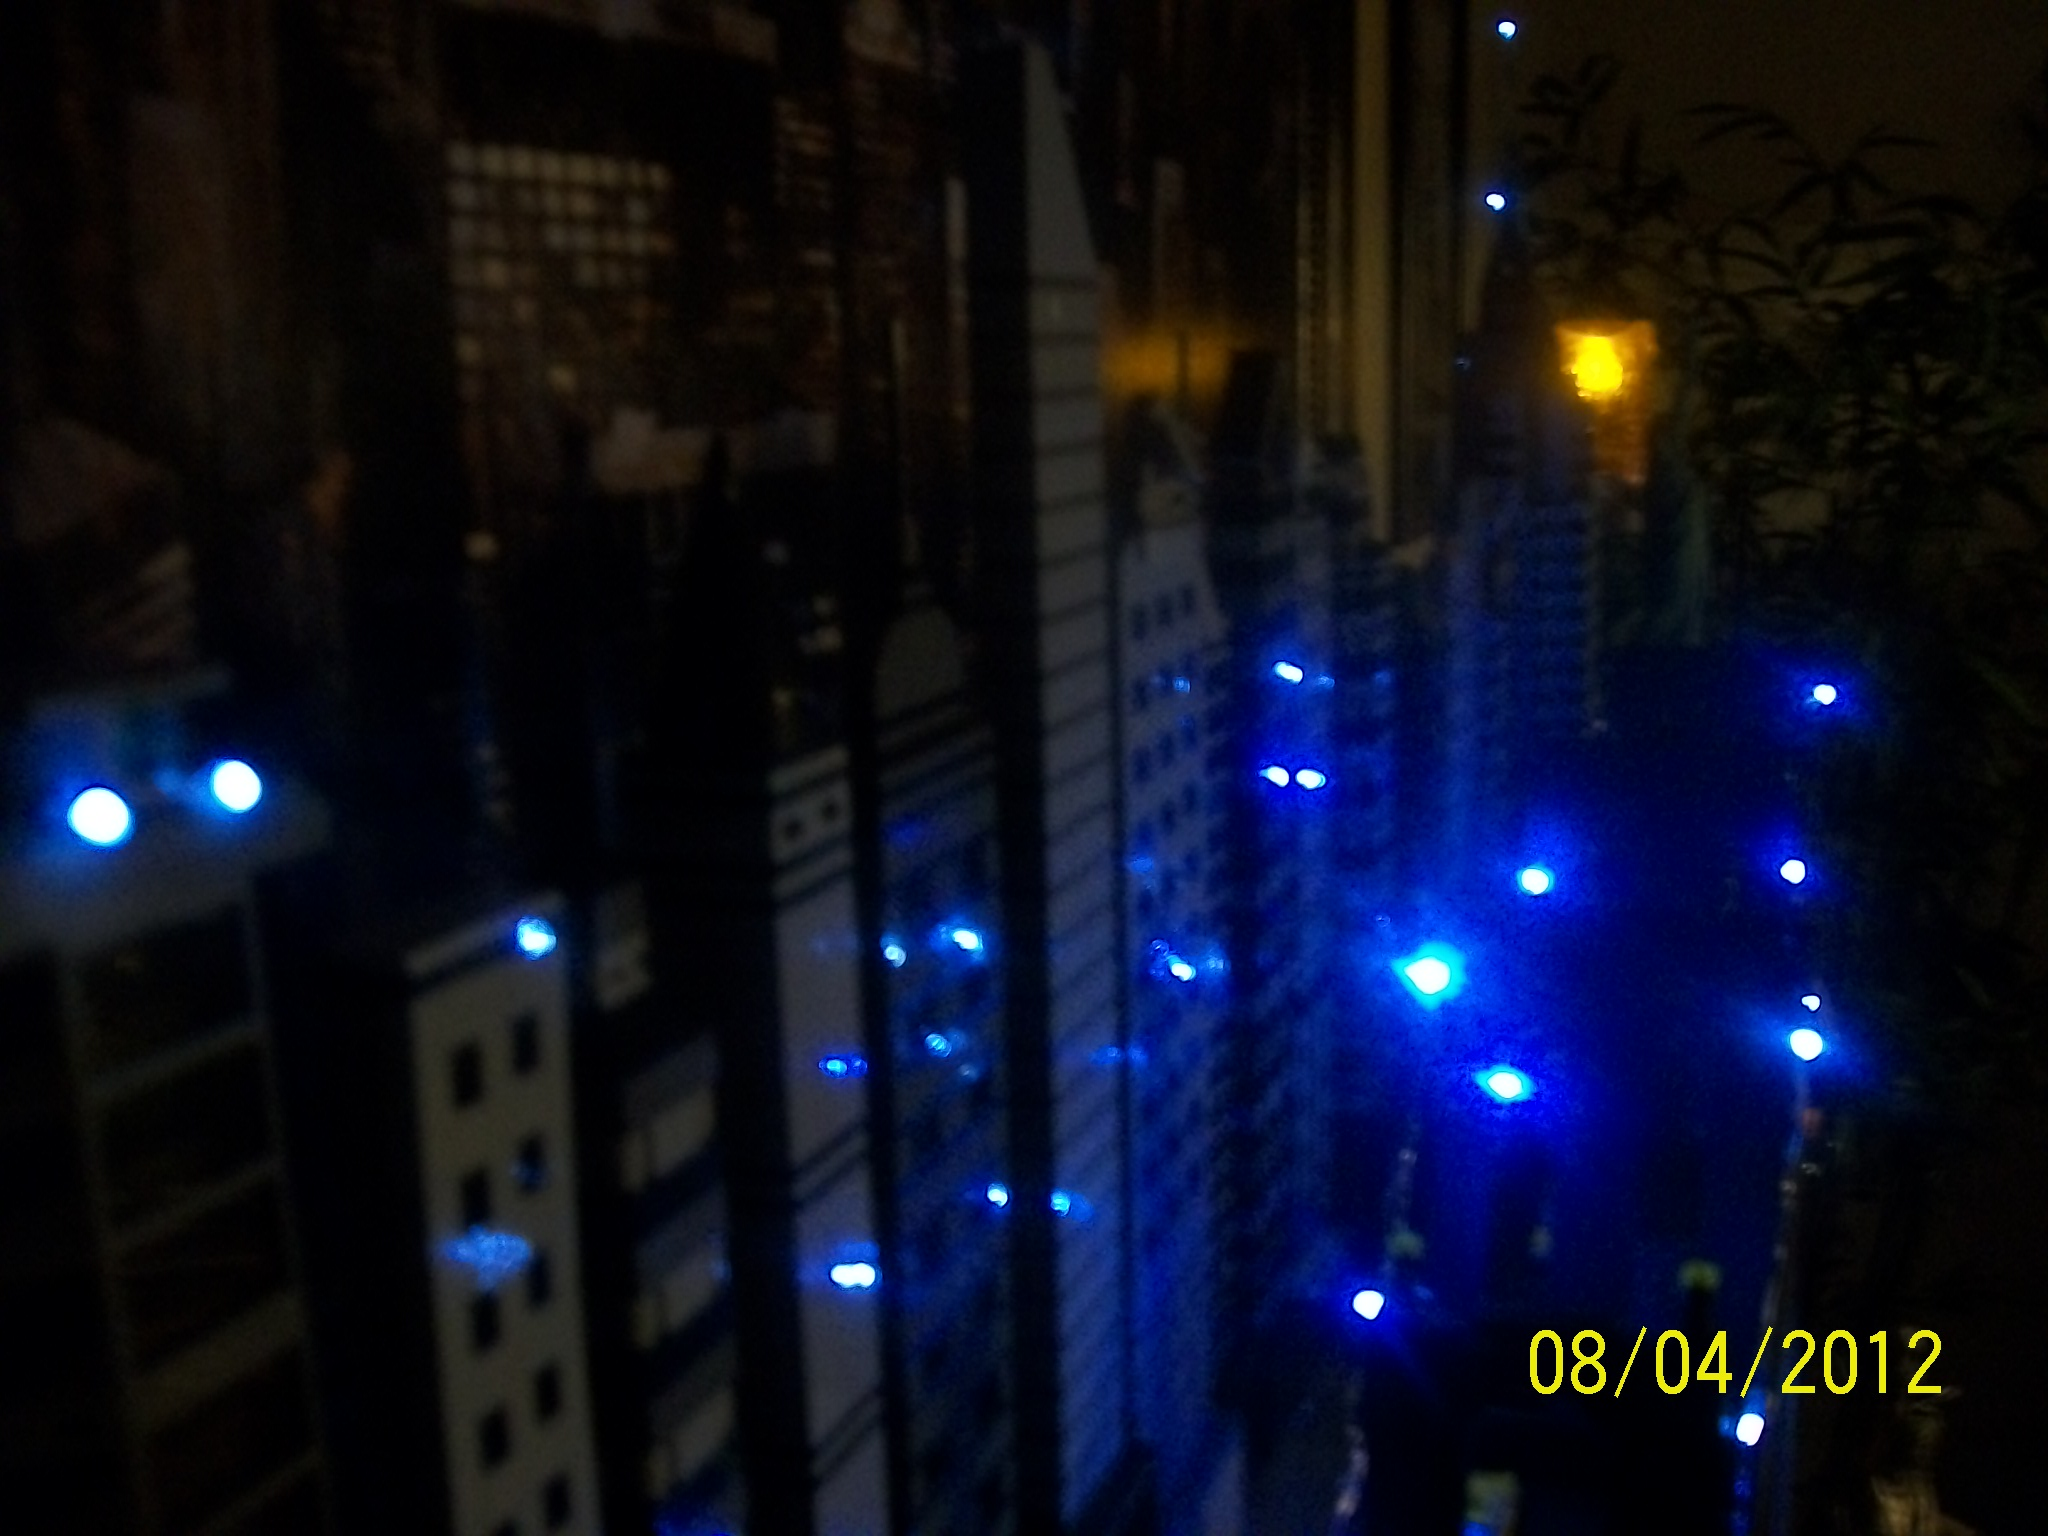 lego_skyline_night_time_210.jpg